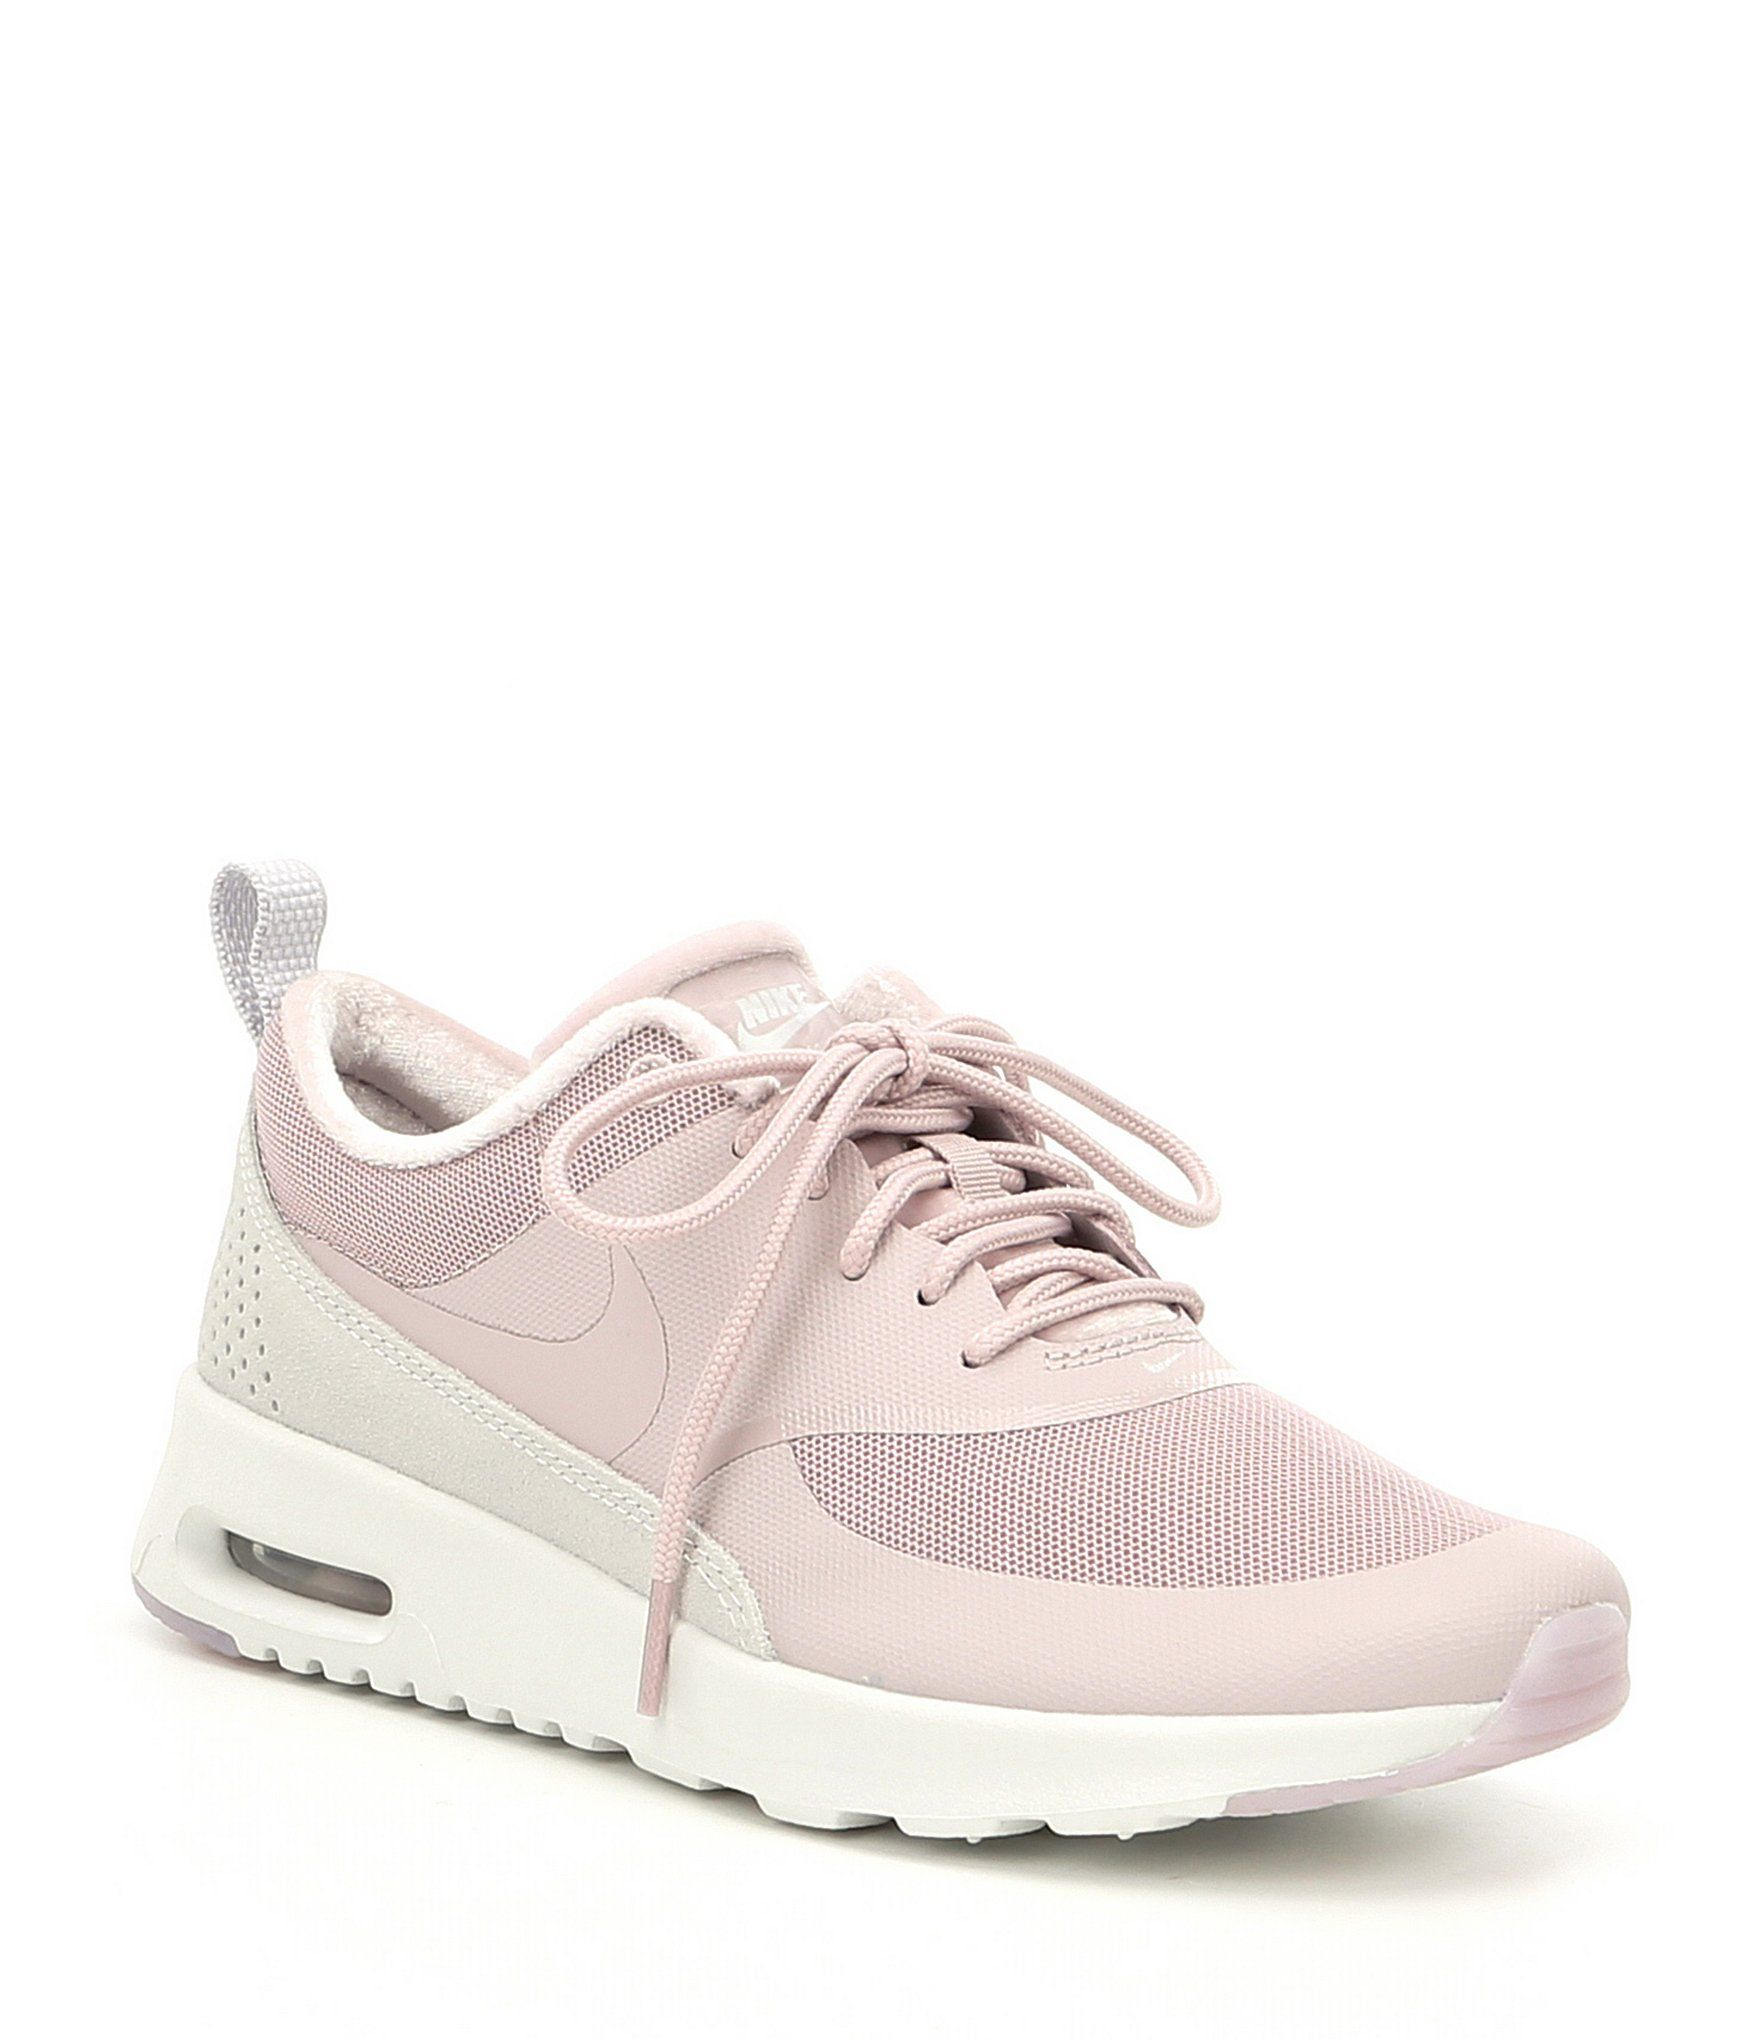 Nike Women's Air Max Thea LX Lifestyle Shoes zwLCW8